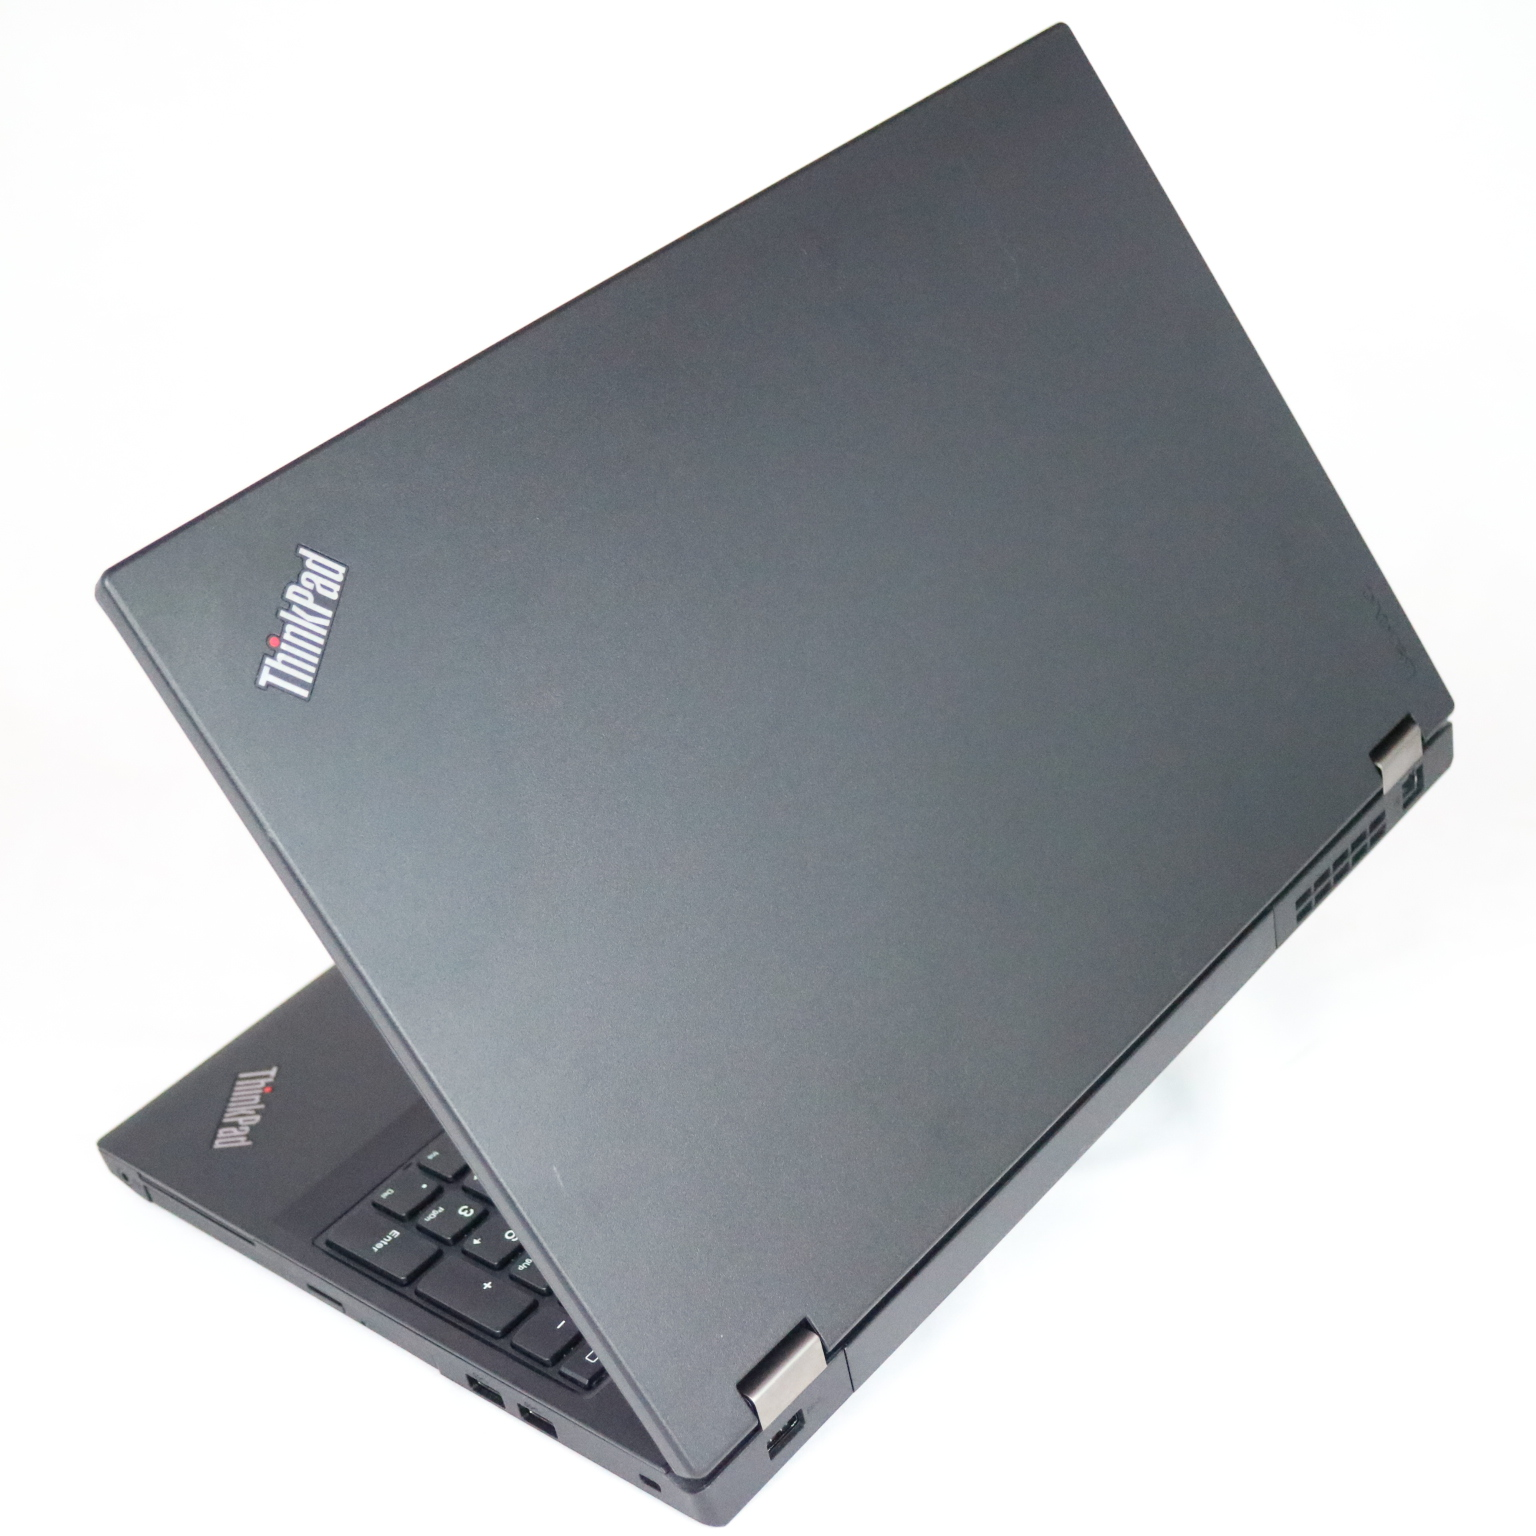 【Windows10】Think Pad L560/ 15.6インチ/ Core i5-6300U/ 2.4GHz/ 4GB/ HDD 500GB